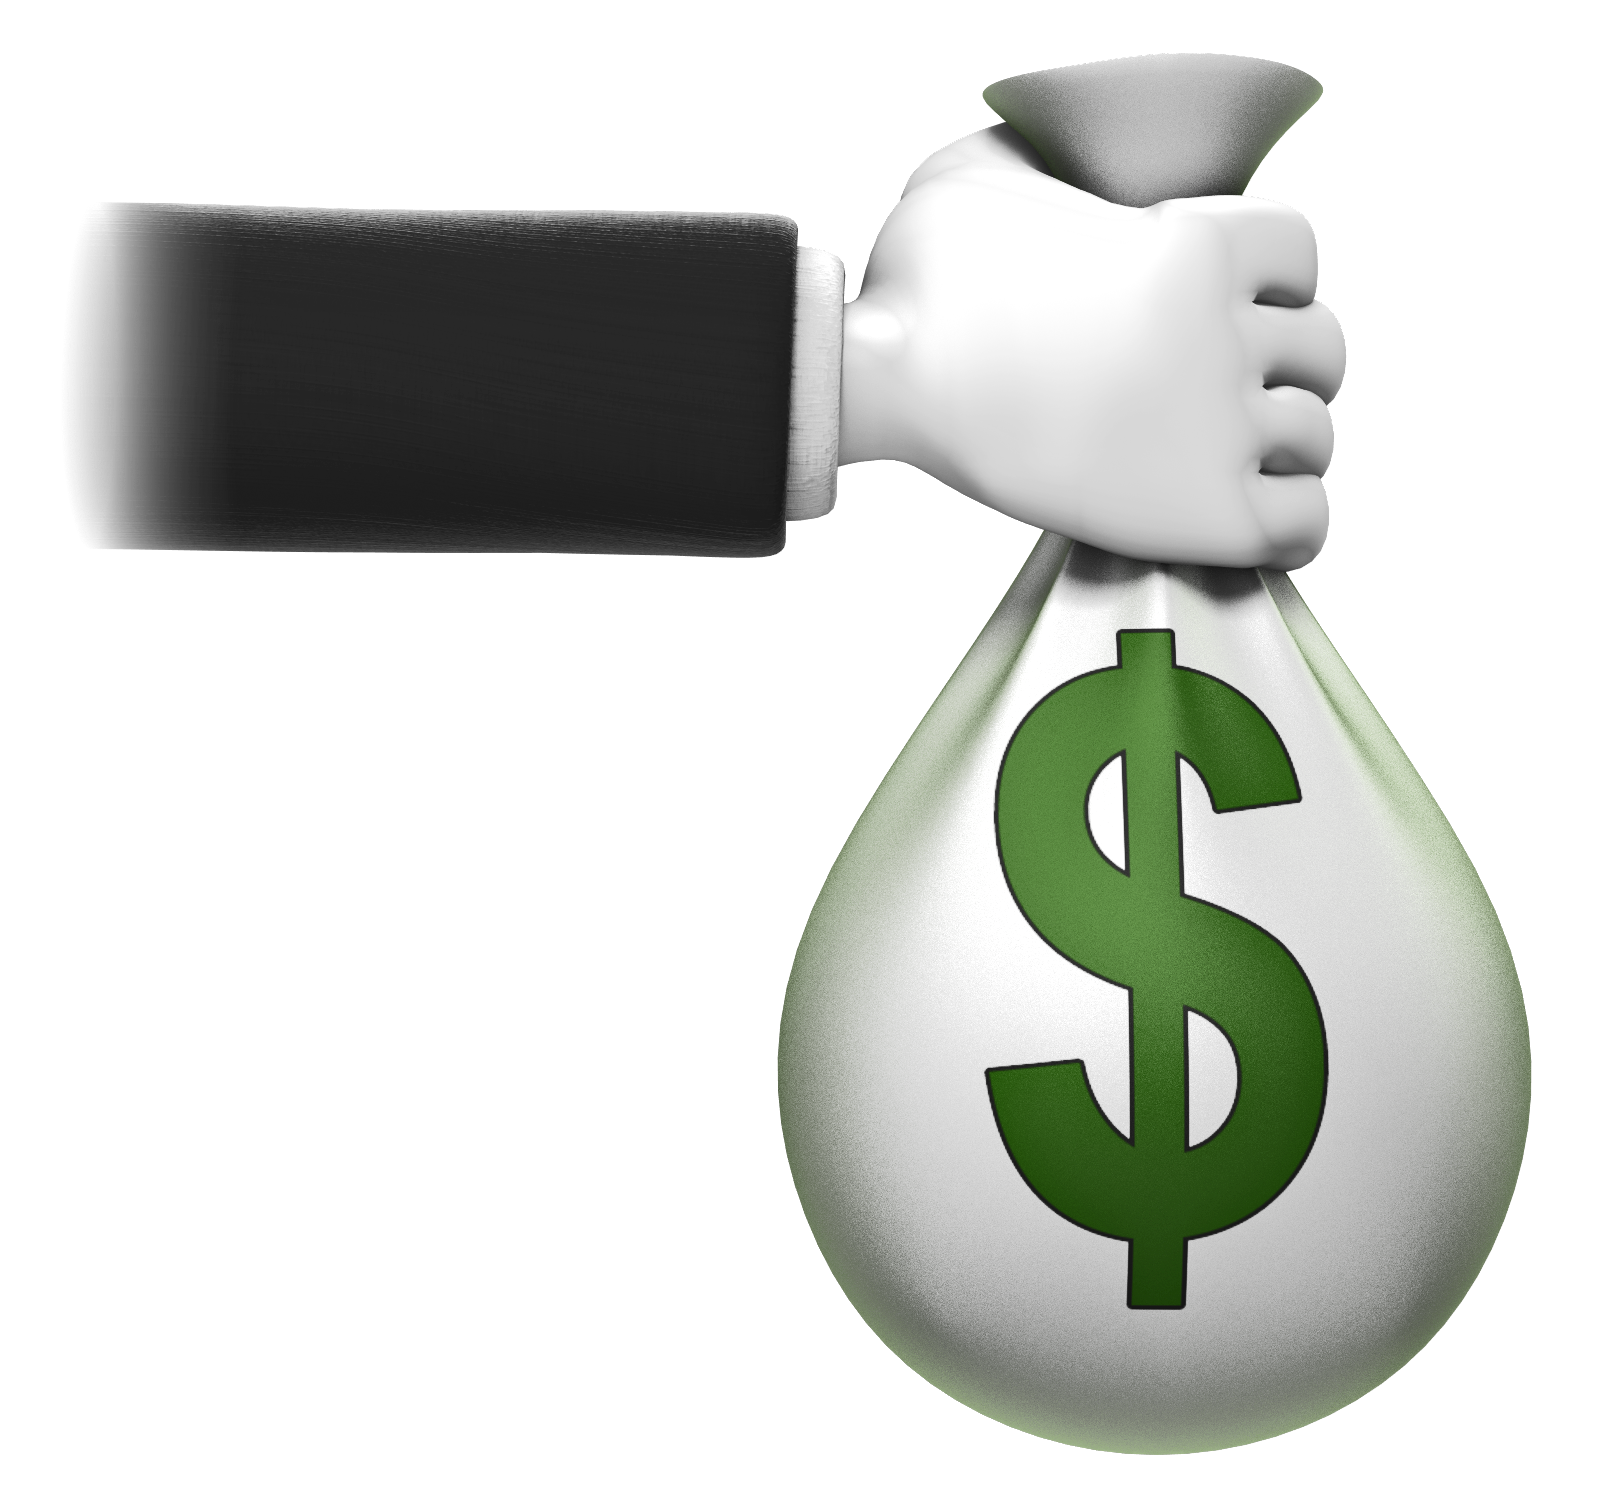 Free Animated Loan Cliparts, Download Free Clip Art, Free.